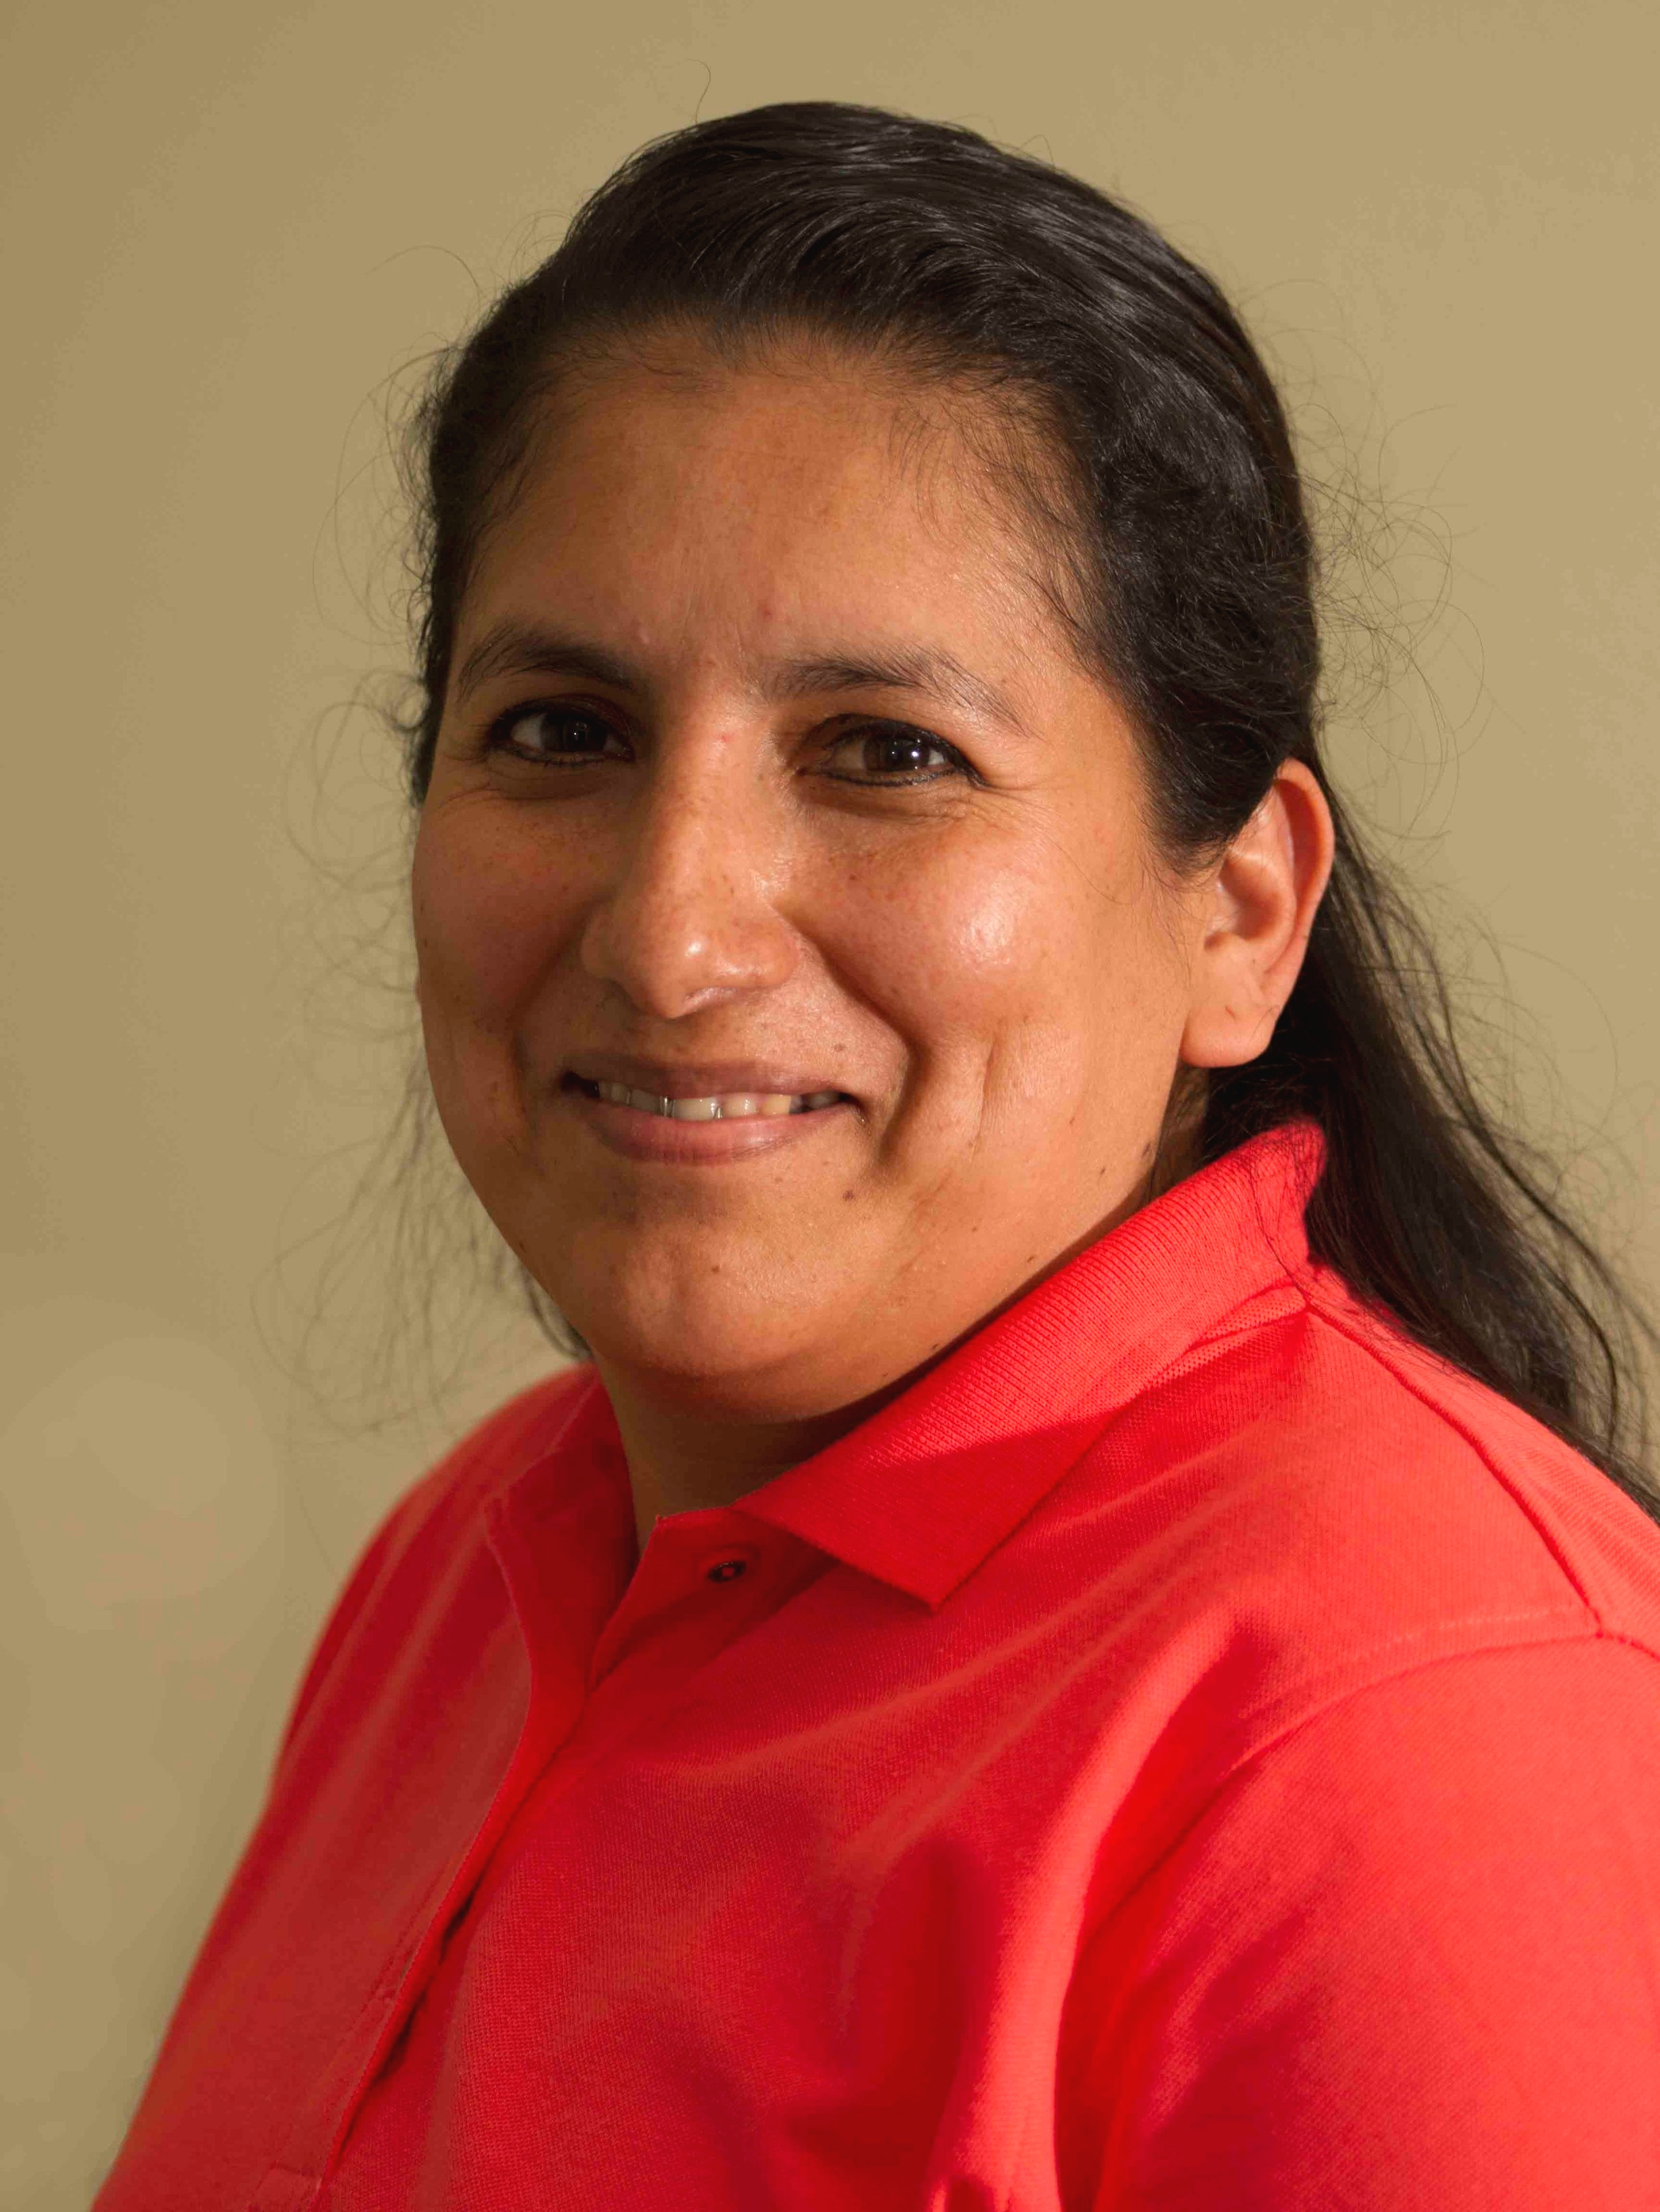 Rafaela  has been loving our residents as a resident assistent for 15 years. Her dedication and incredible insight into the workings of our home are highly valued. Rafaela is married with two daughters and is a grandmother.